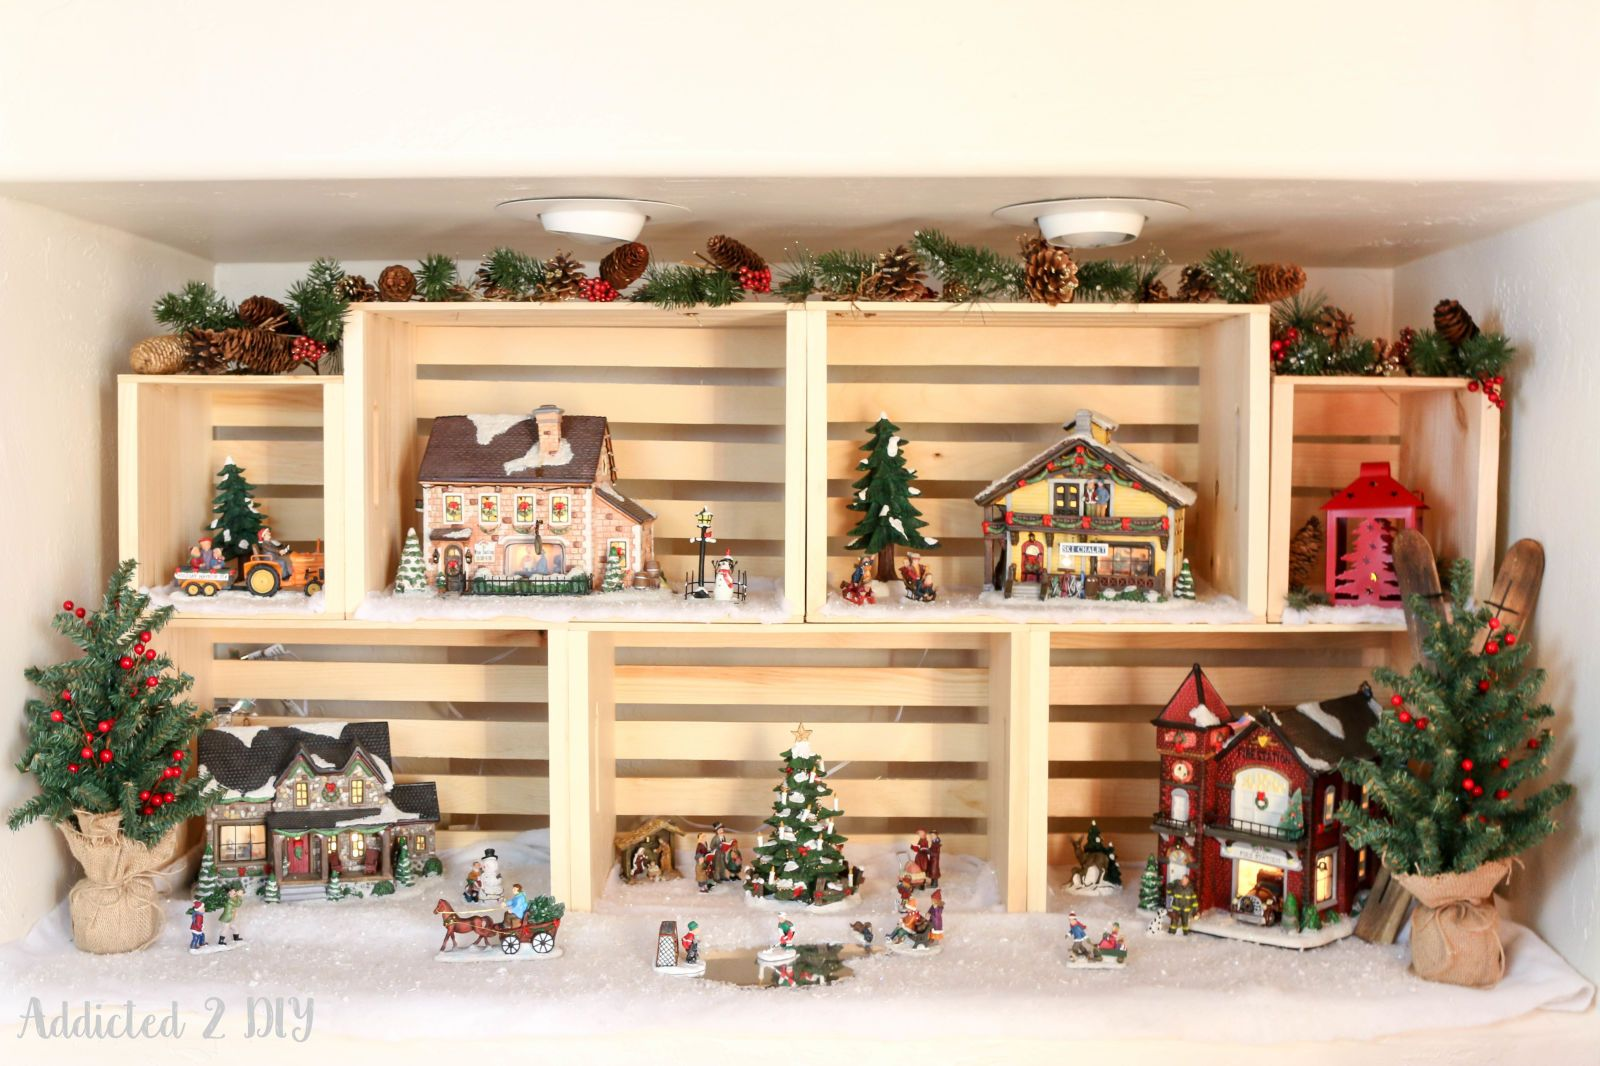 6 Clever Ways To Use Wooden Crates This Christmas Christmas Village Display Diy Christmas Village Wooden Crates Christmas